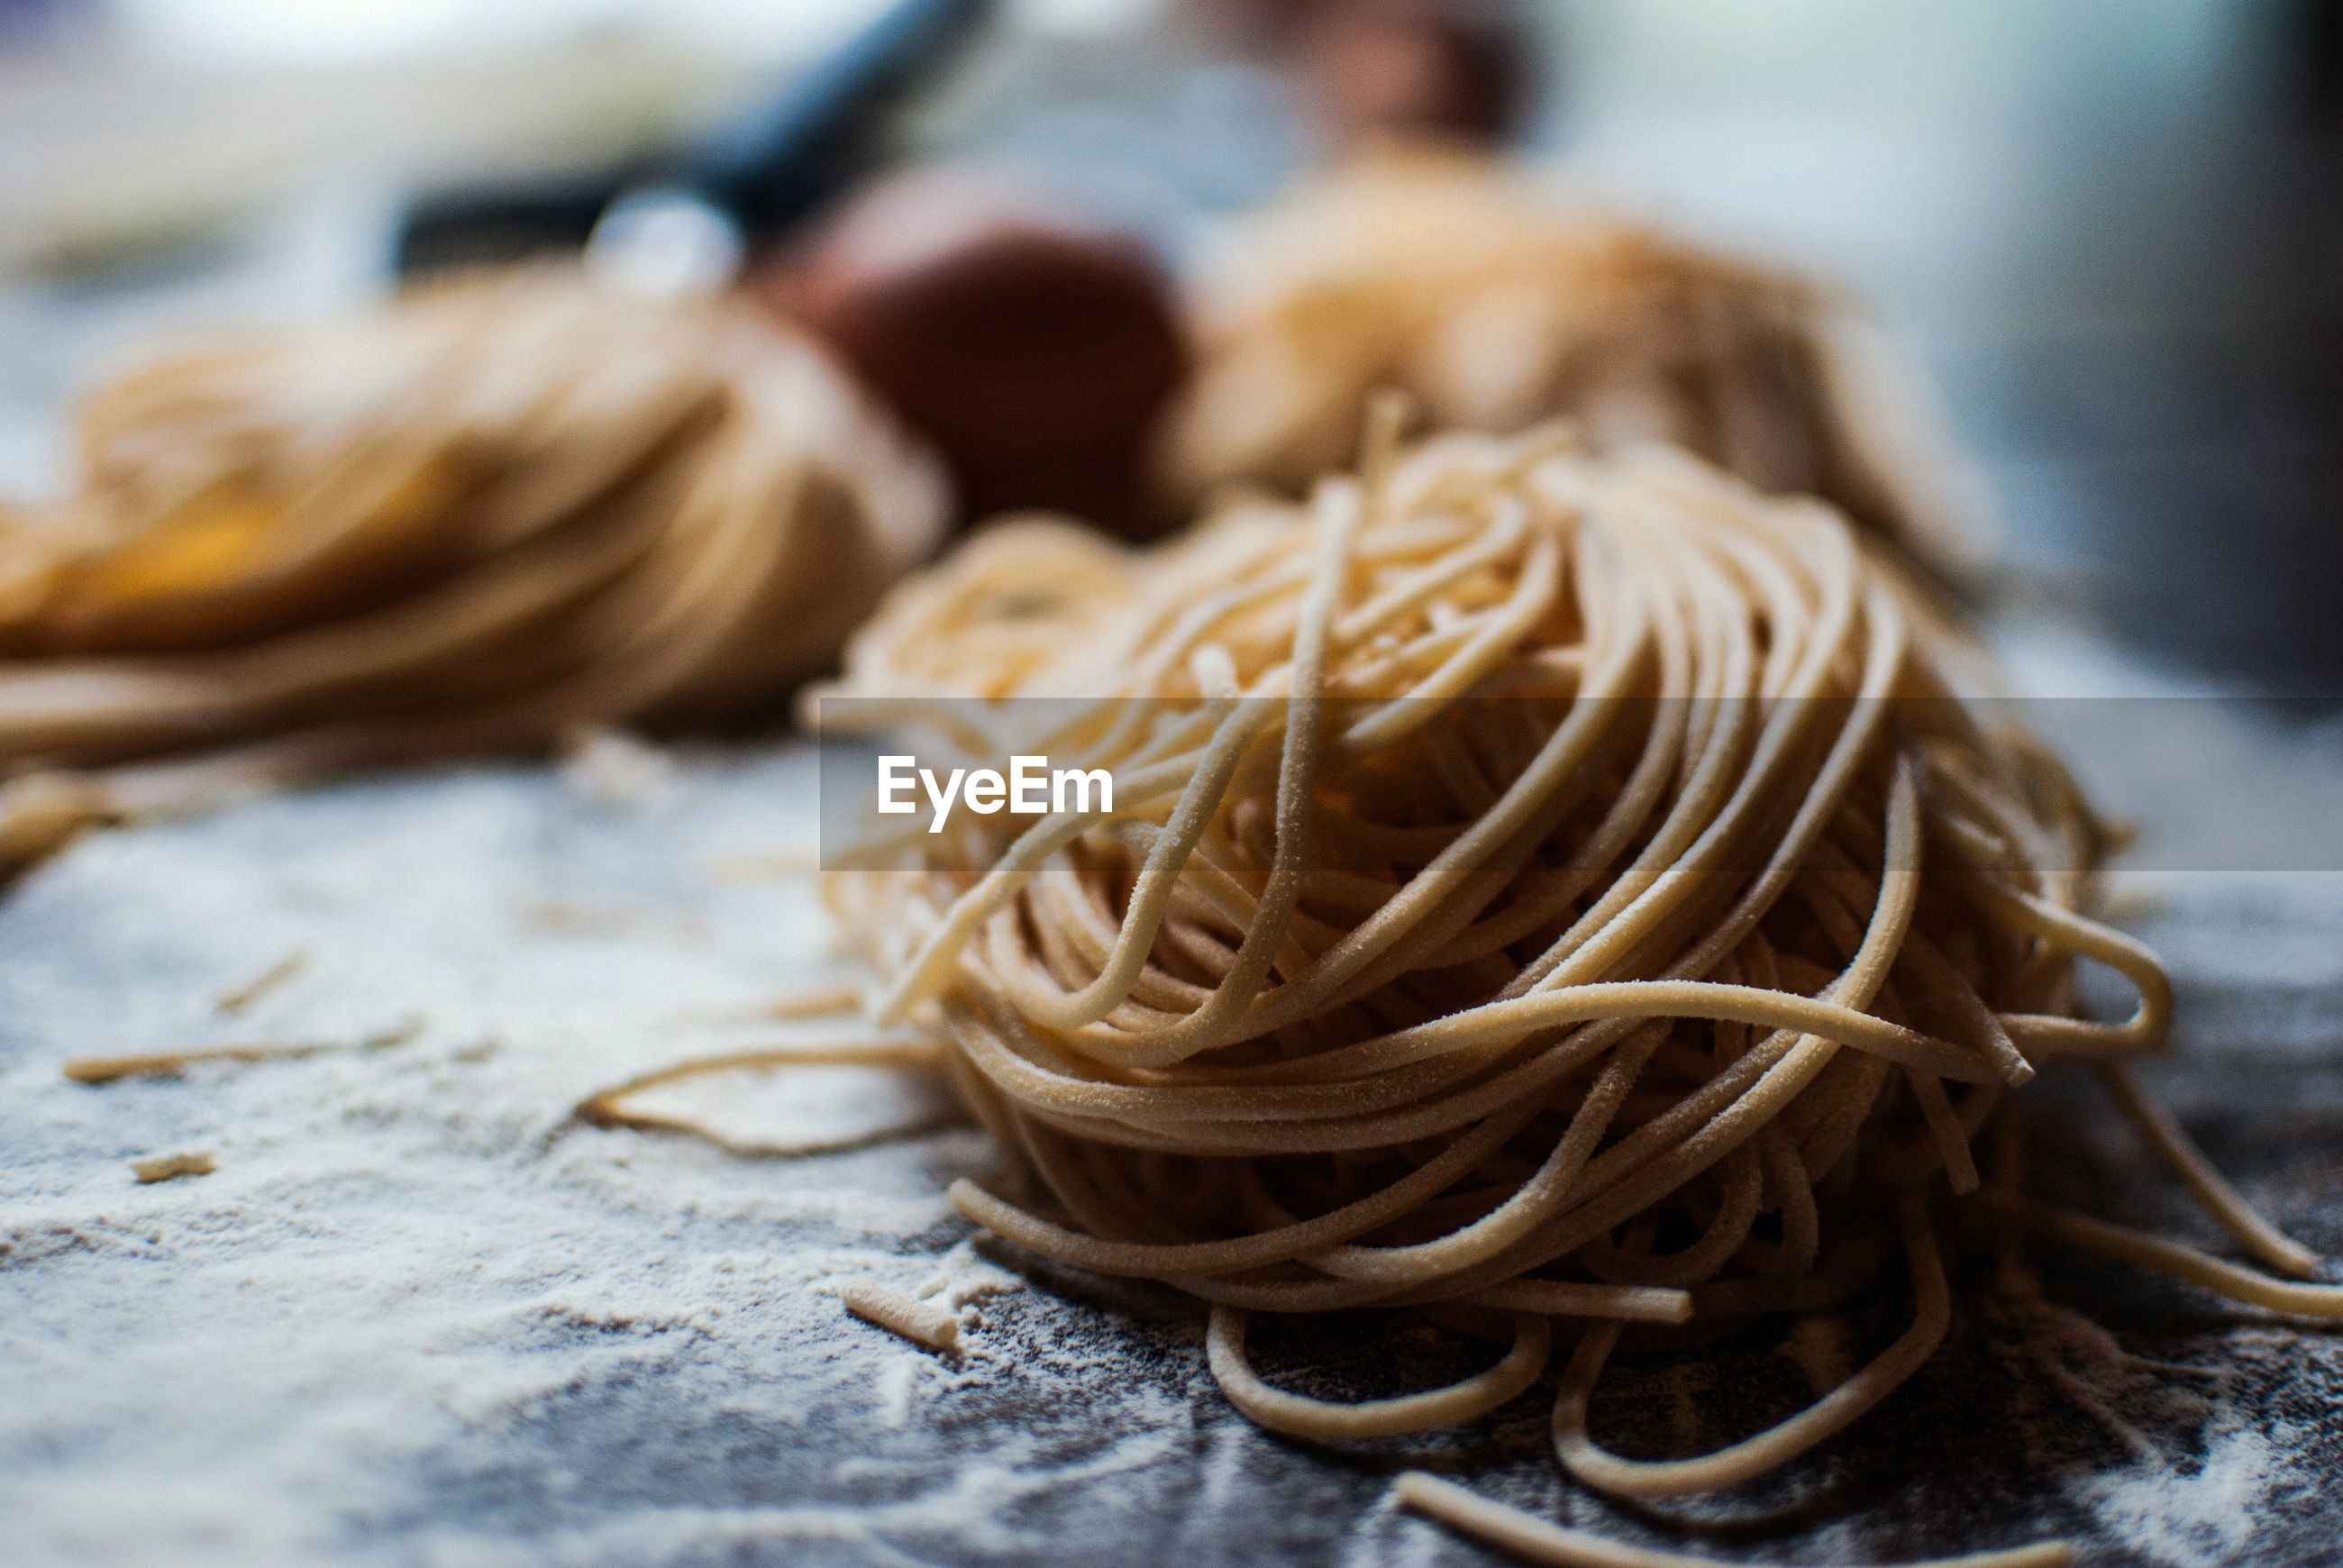 Close-up of pasta with egg on table